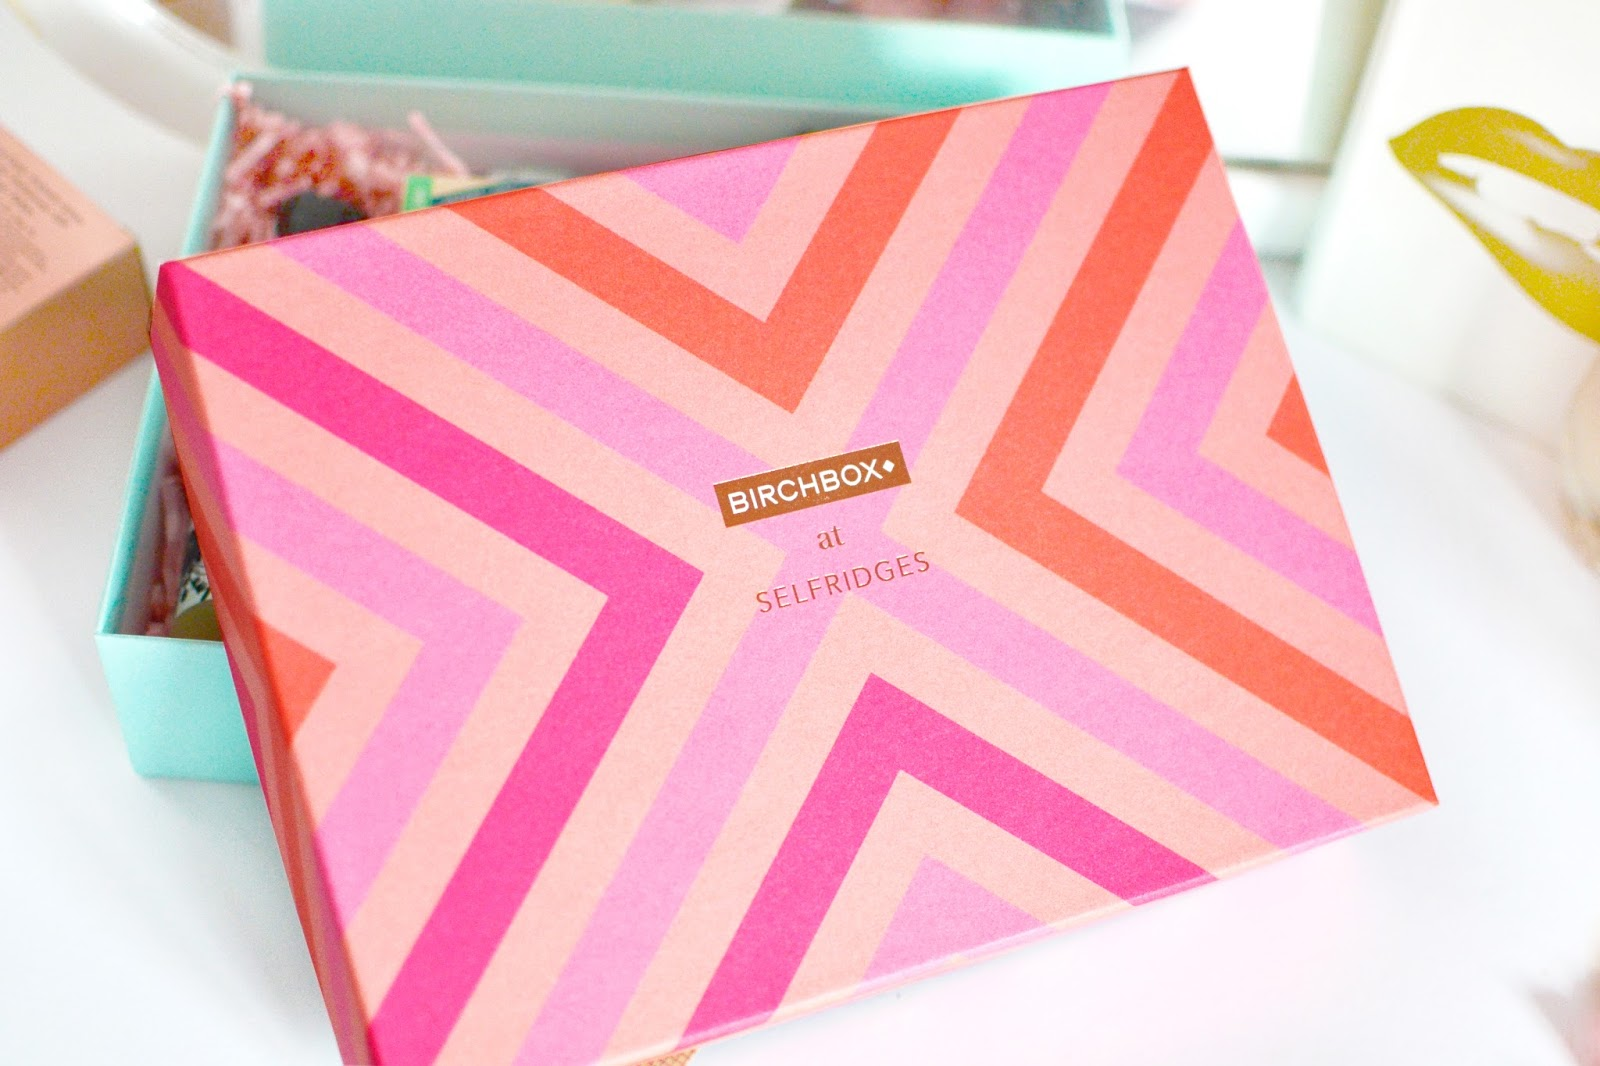 Birchbox and Selfridges team up for a limited edition box